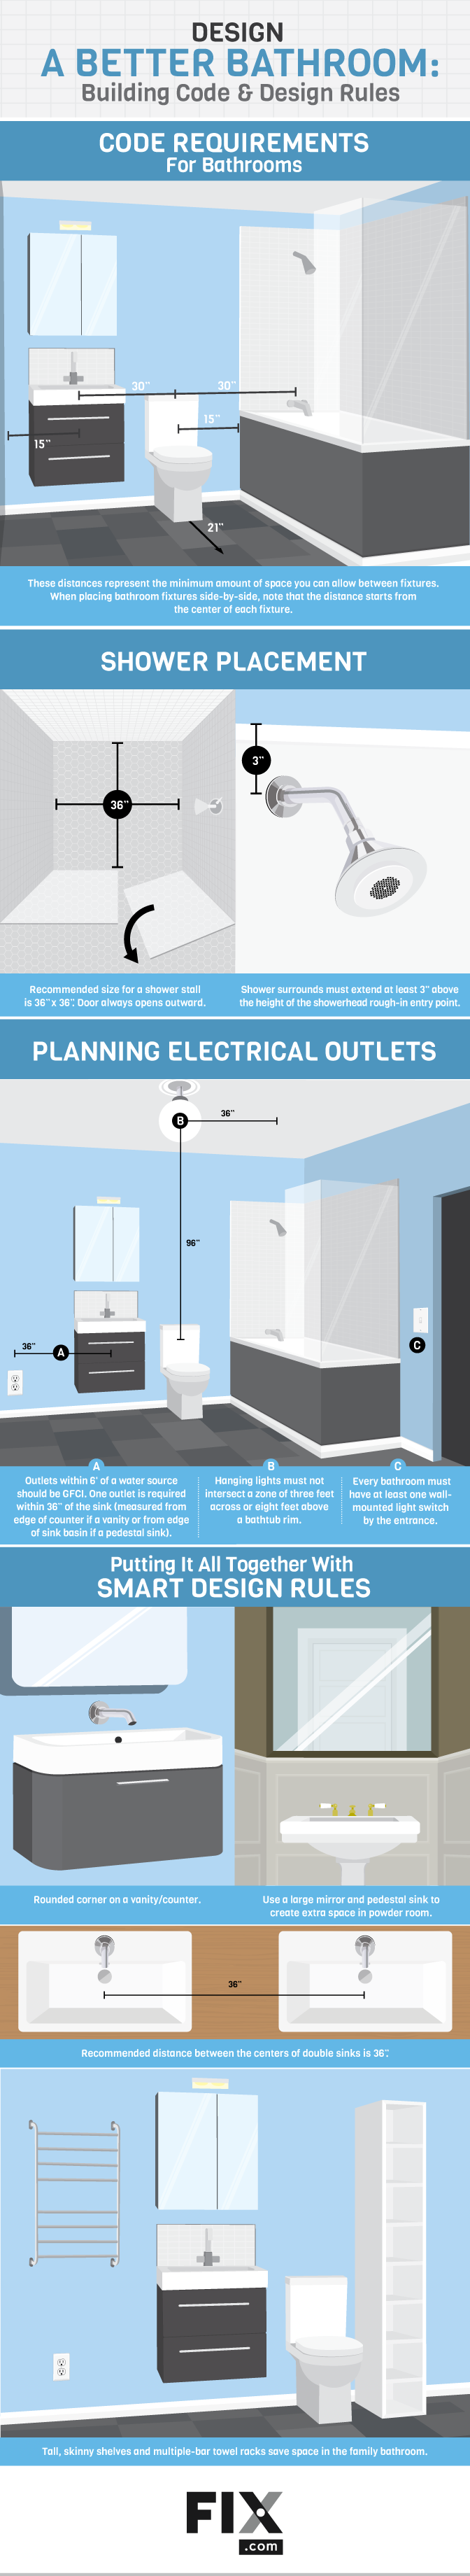 A Better Bathroom: Building Code and Design Rules